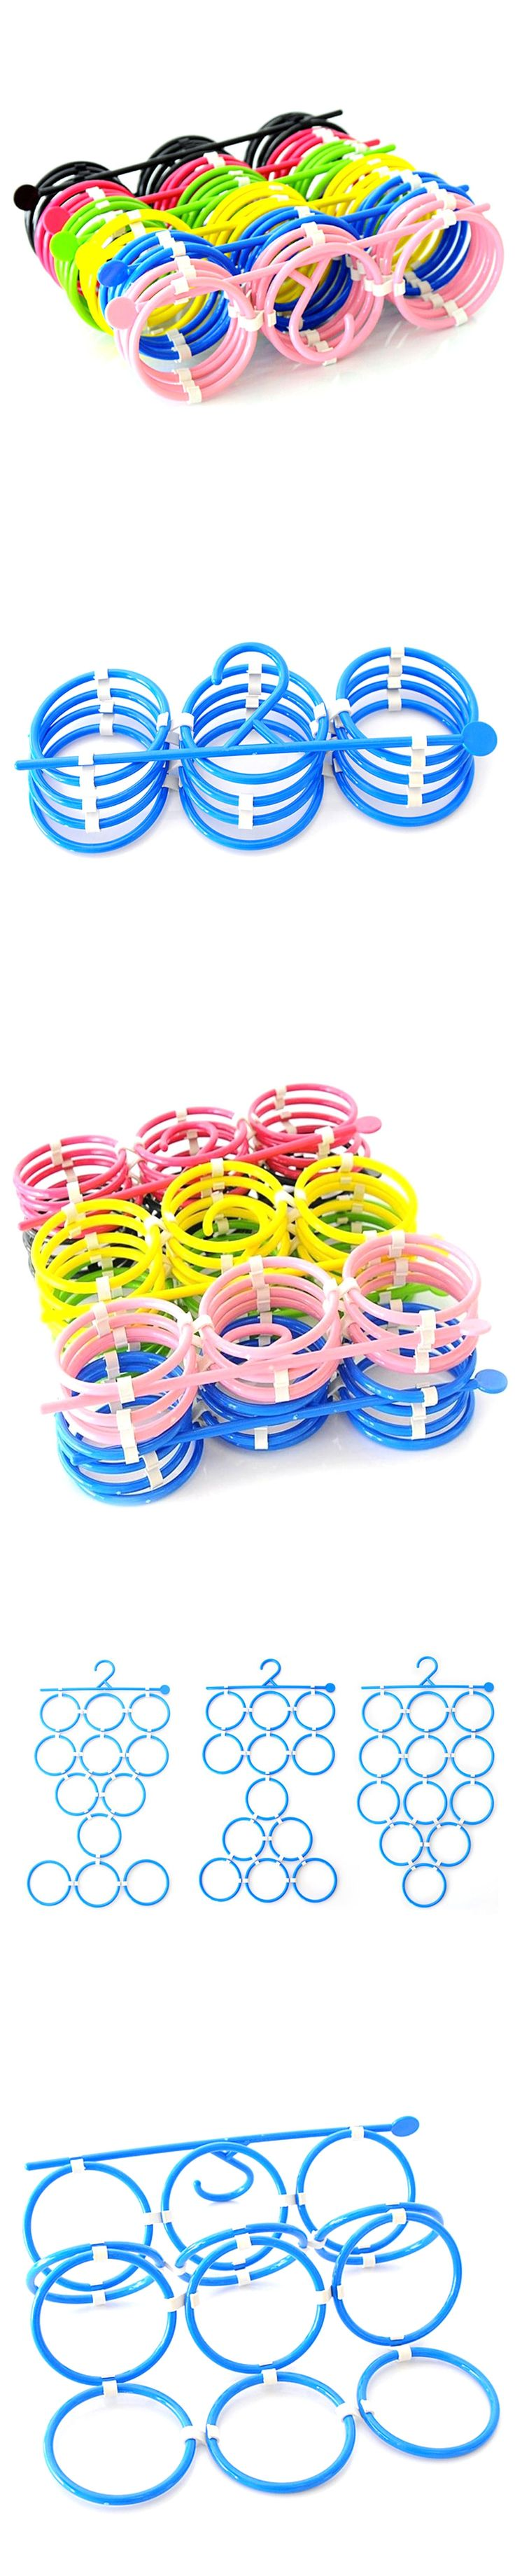 12 Rings Shawl Scarf Tie Hanger Belt Clothes Holders Hook Multi-Ring Hanger Storage Can Be Freely Combined With A Coat Hanger